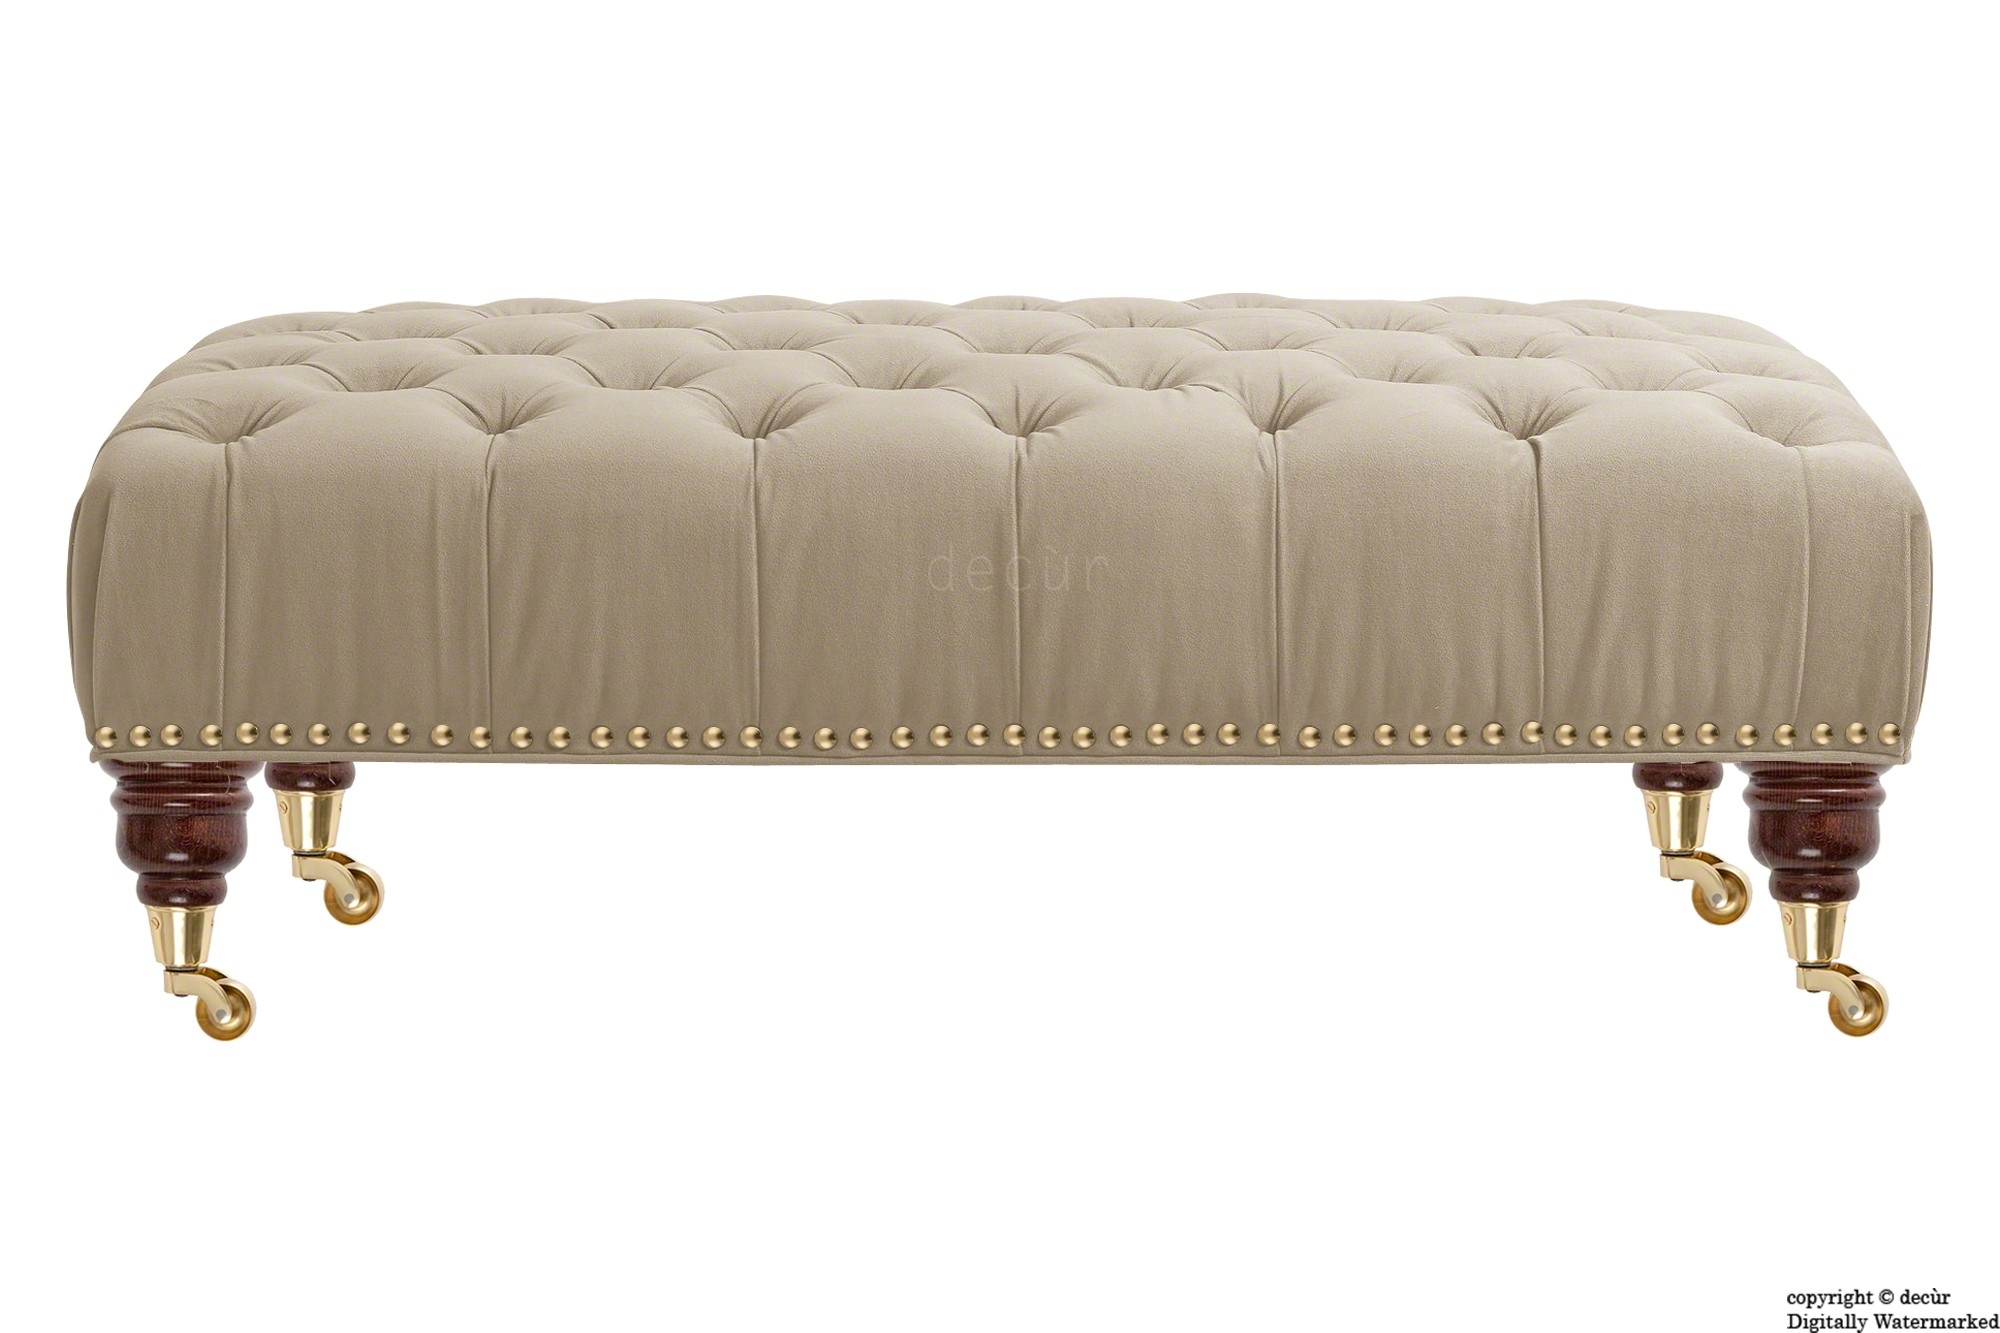 Bespoke Designer Sofas Footstools Bespoke Footstools Bespoke Throughout Velvet Footstool (Image 4 of 15)